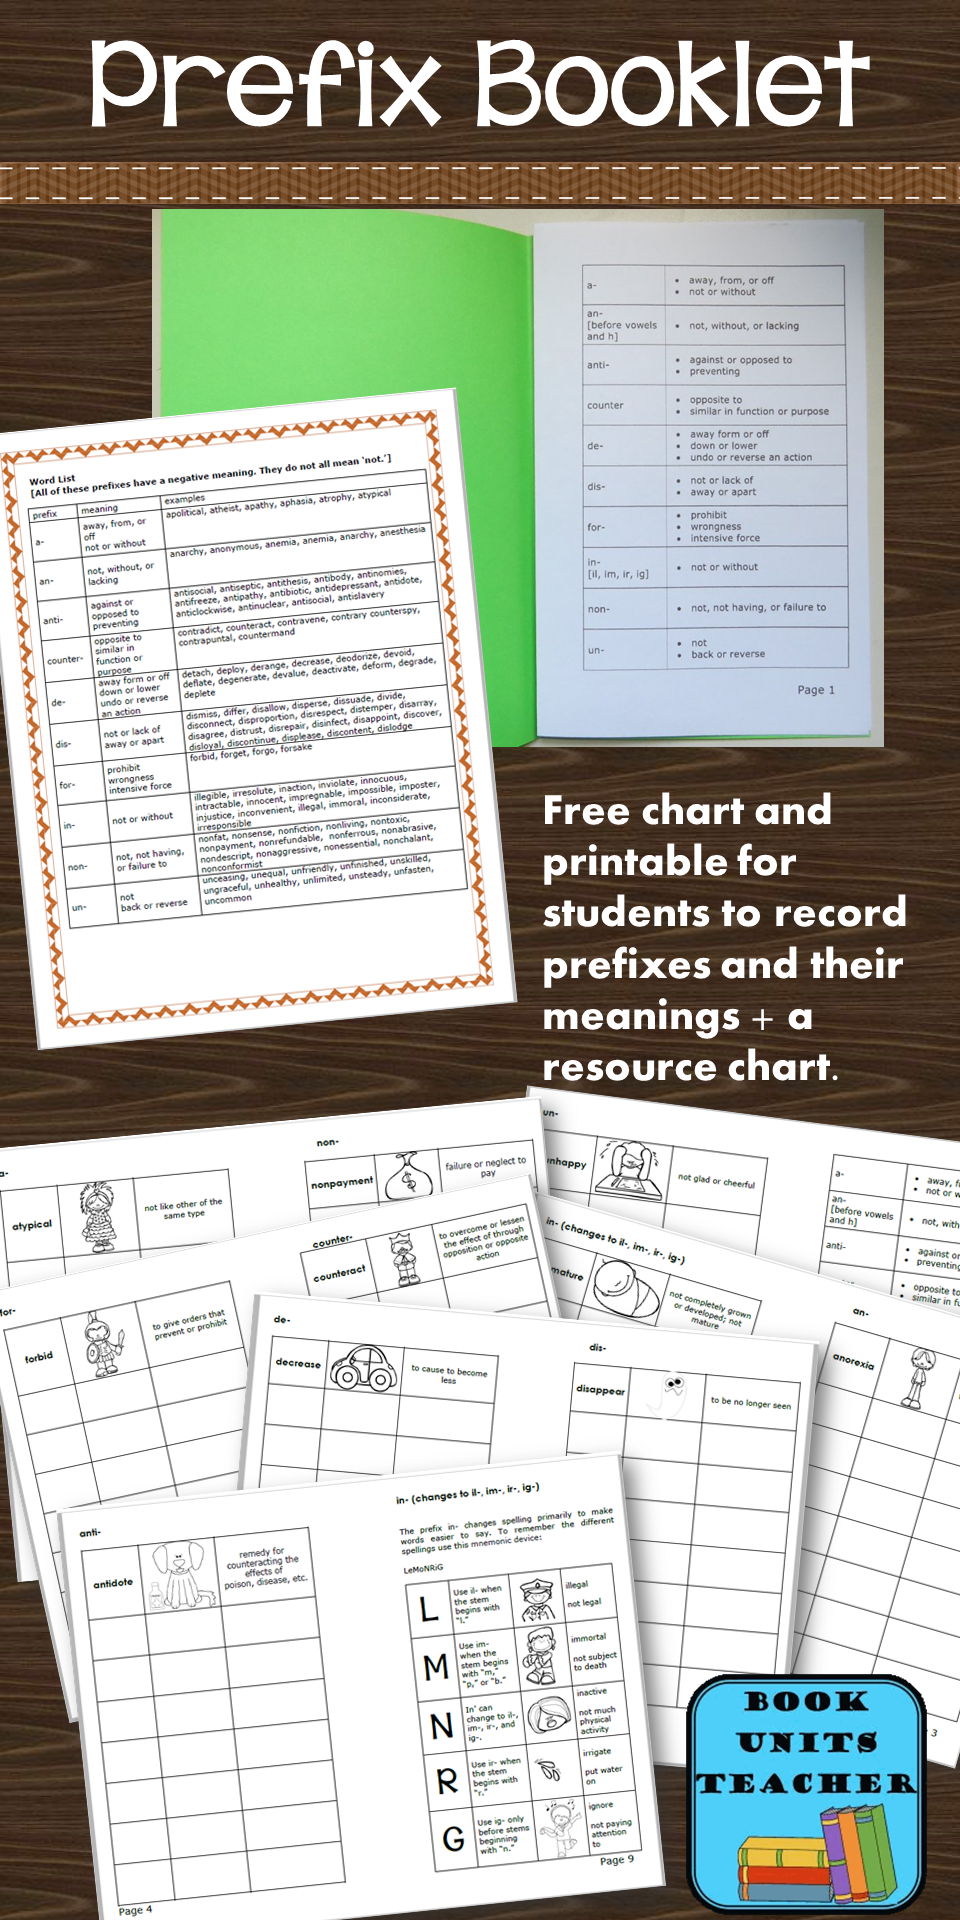 Free printable booklet for students to record prefixed words and their meanings PLUS a resource chart.